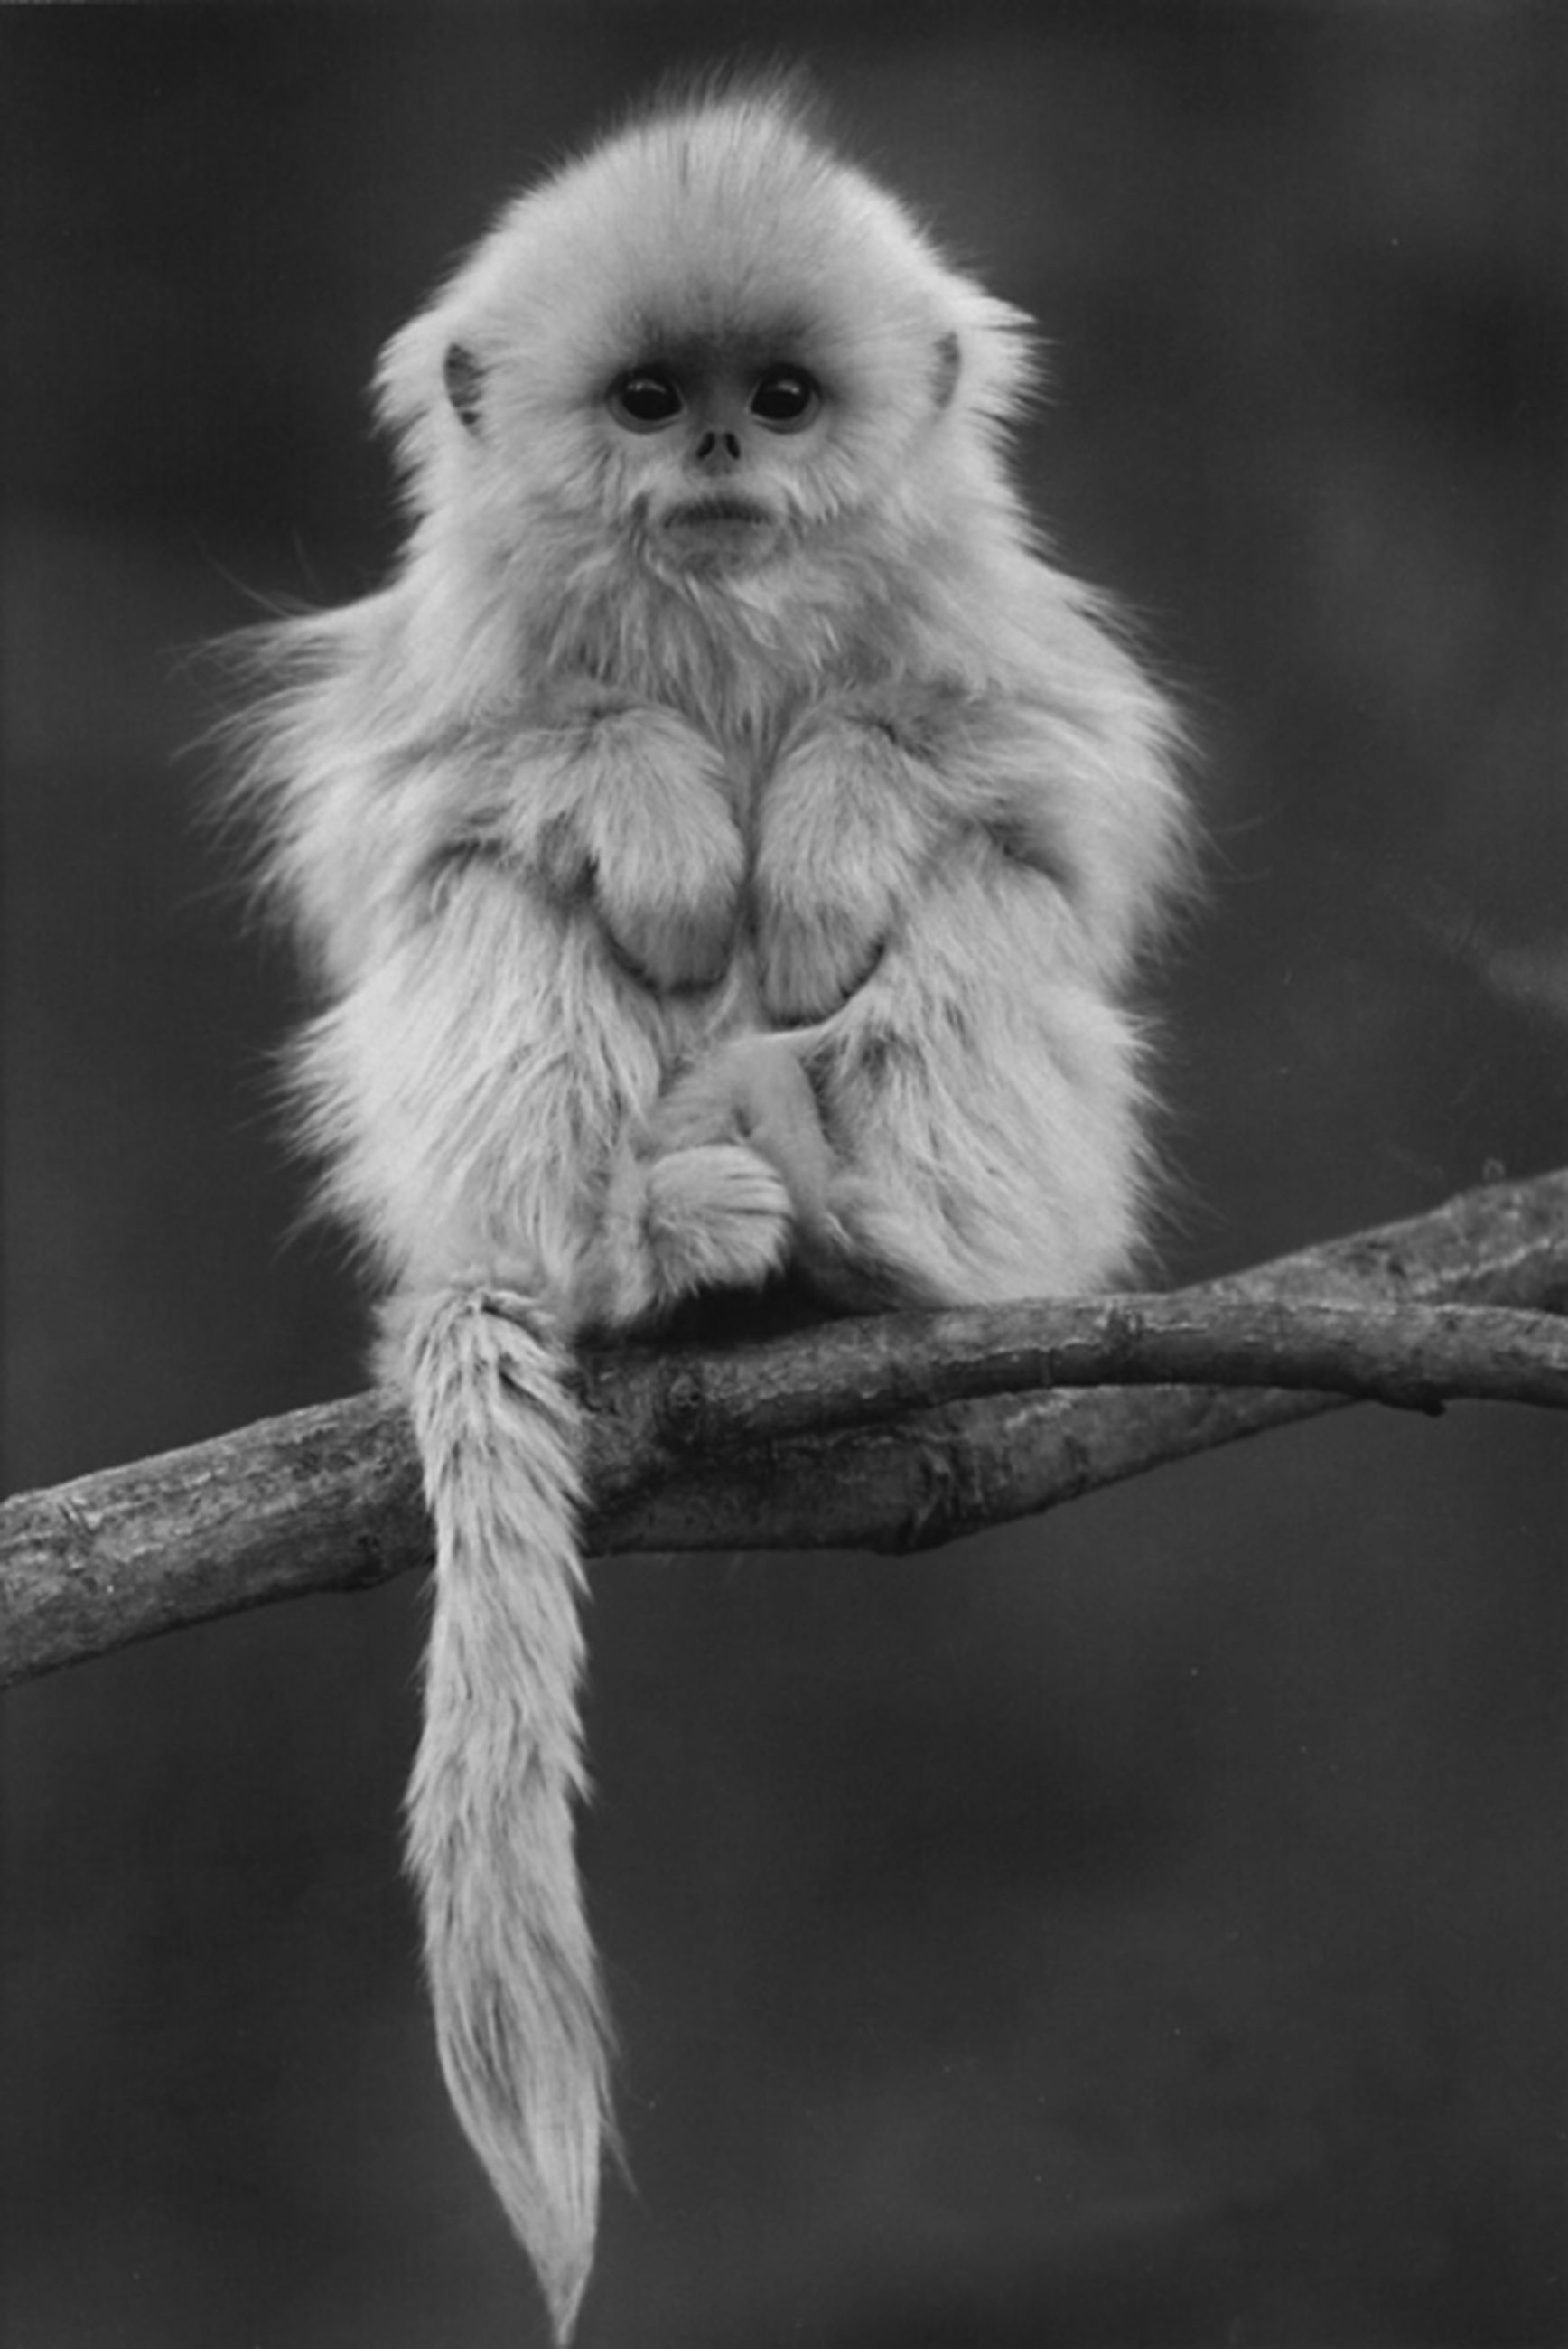 animal themes, one animal, wildlife, animals in the wild, mammal, focus on foreground, looking away, close-up, monkey, sitting, full length, animal hair, animal head, no people, front view, zoology, portrait, nature, outdoors, day